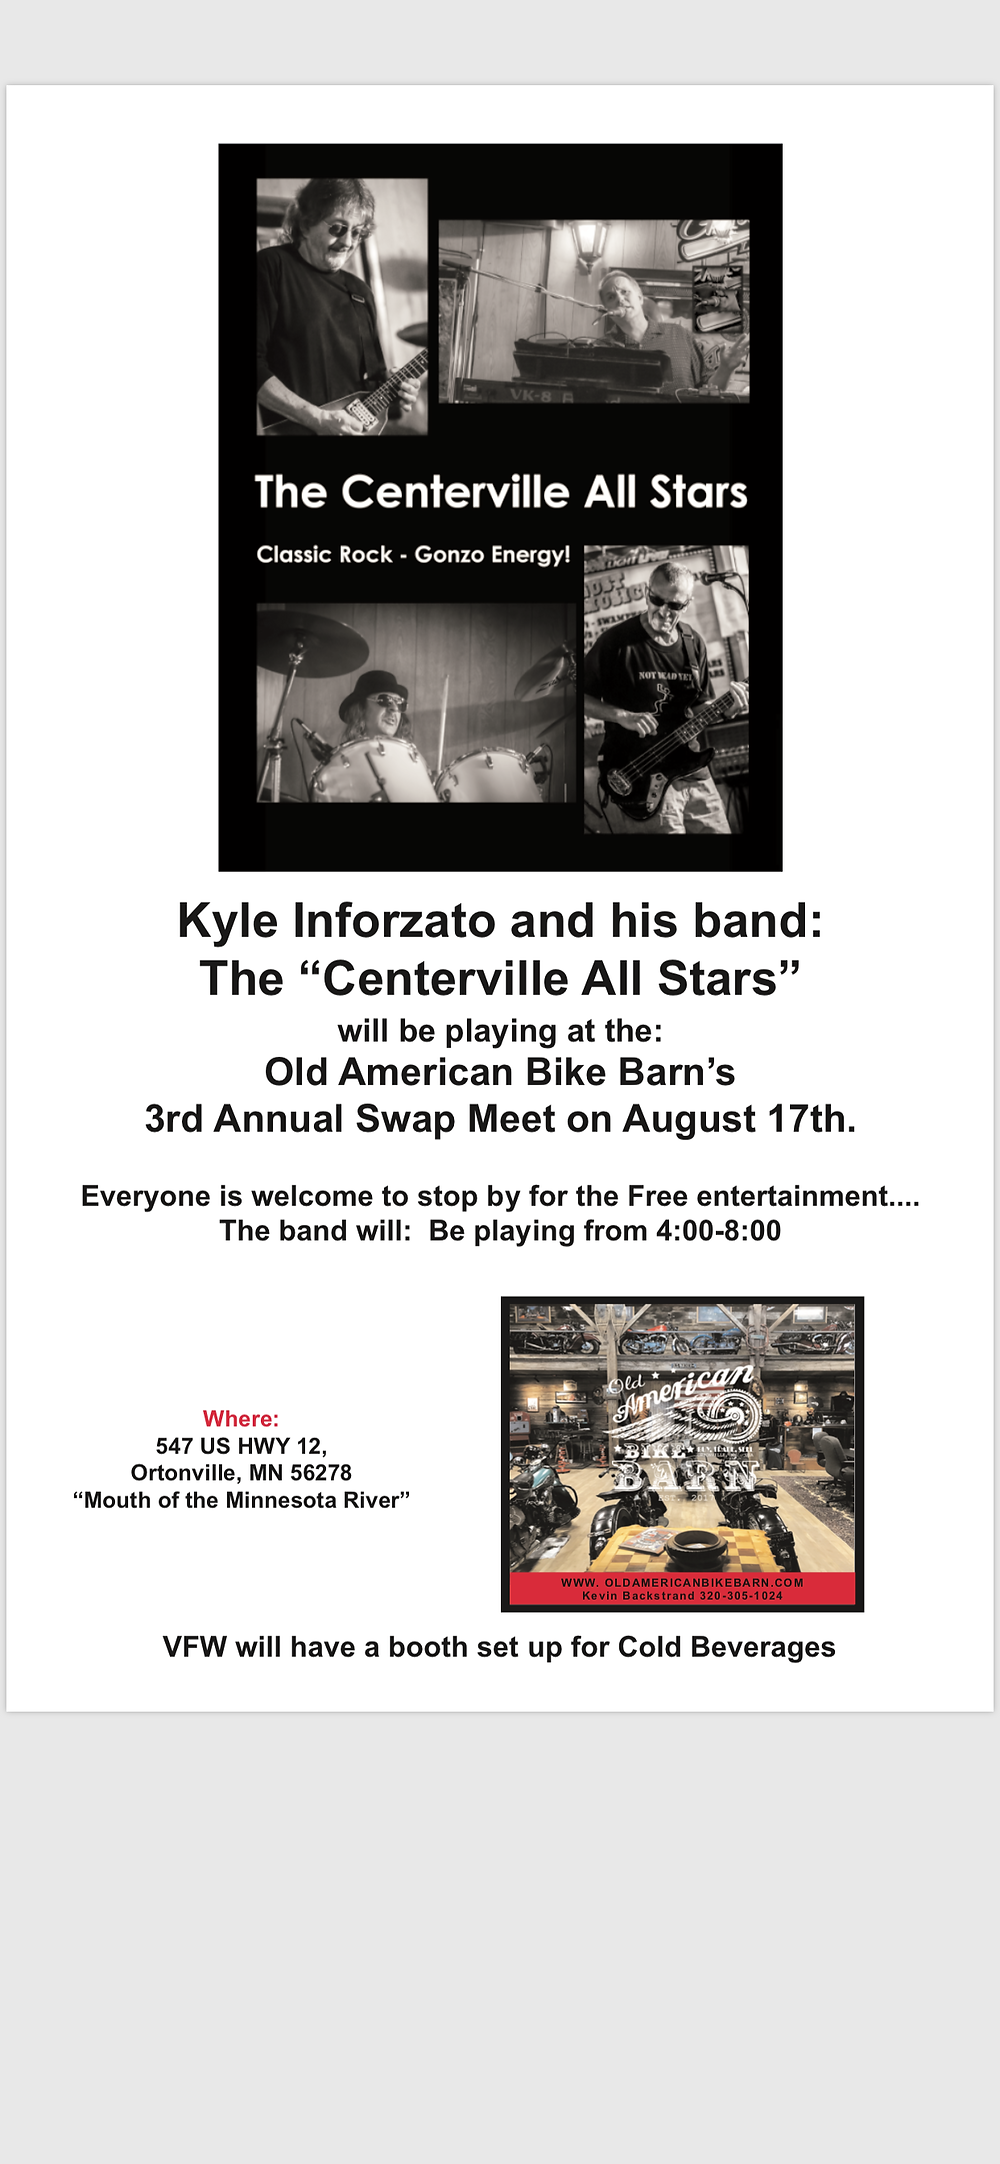 Stop by and watch Kyle Inforzato and The Centerville All Stars perform at the Old Amerian Bike Barn's 3rd Annual Swap Meet!